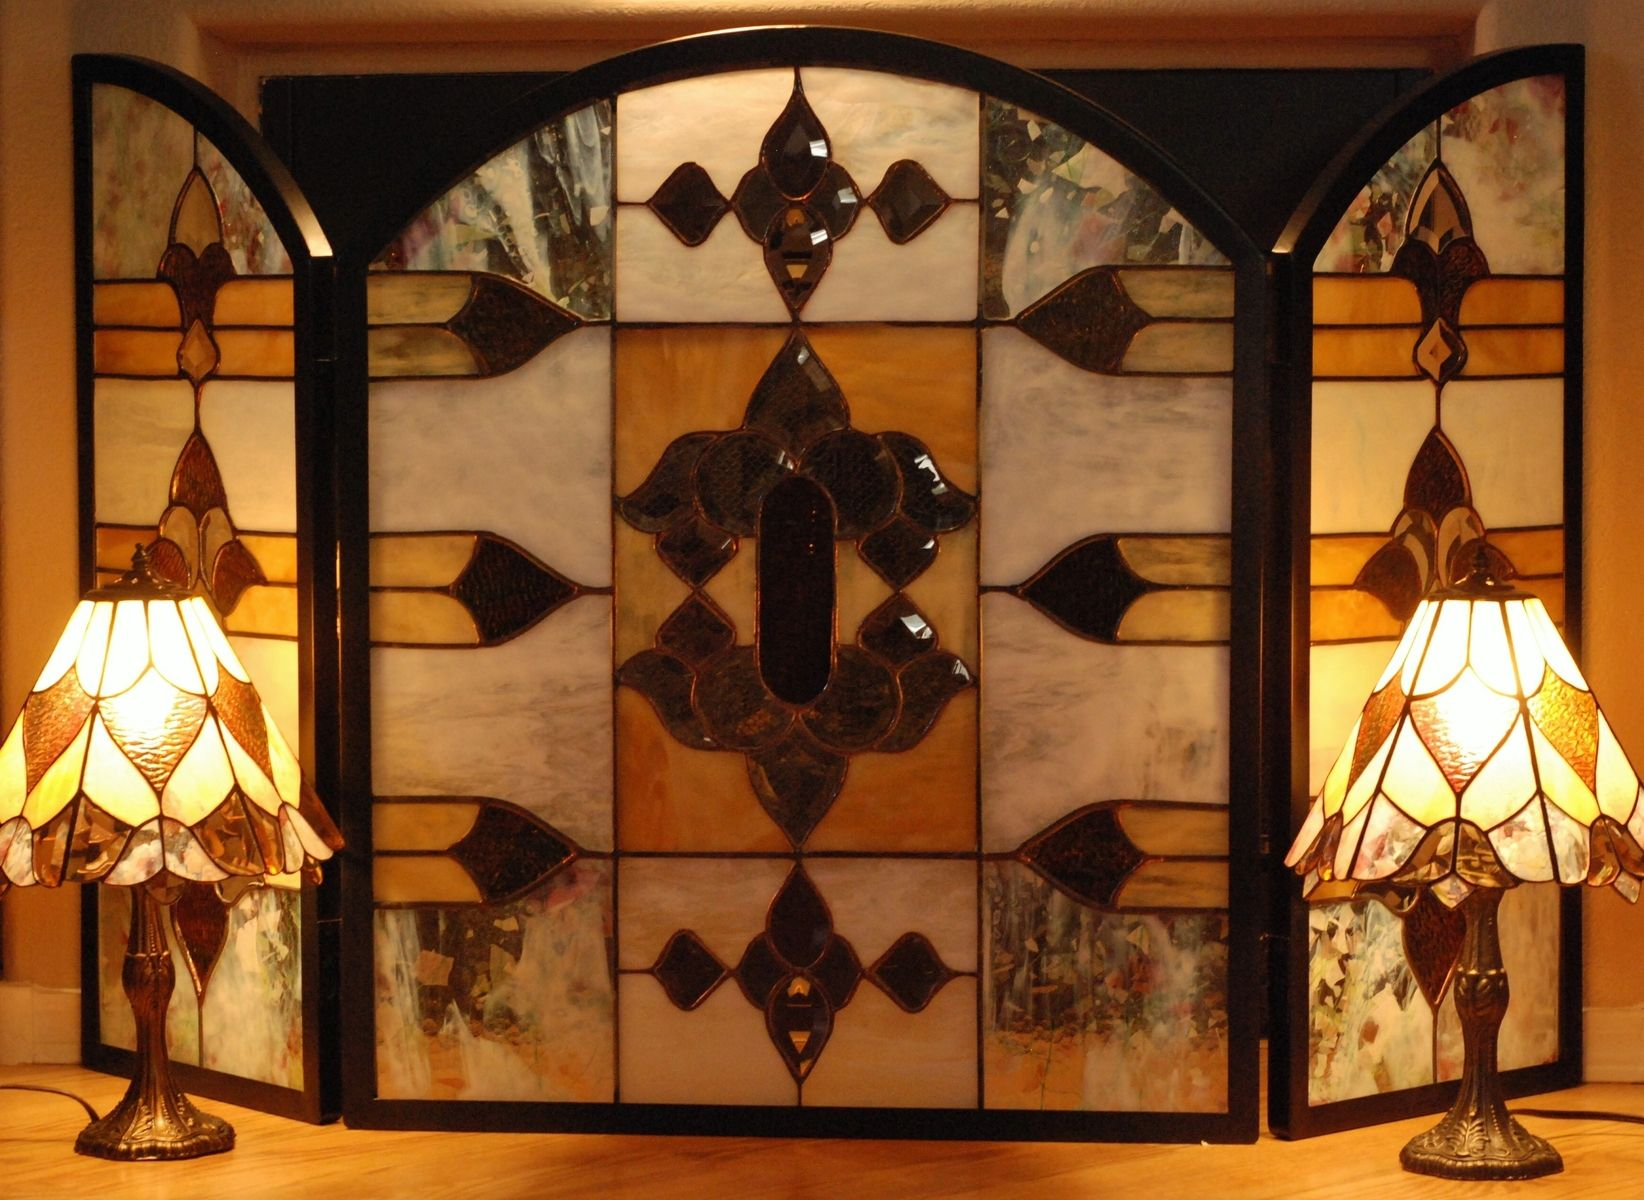 Buy A Custom Stained Glass Fire Screen With 2 Matching Made To Order From Krysia Designs